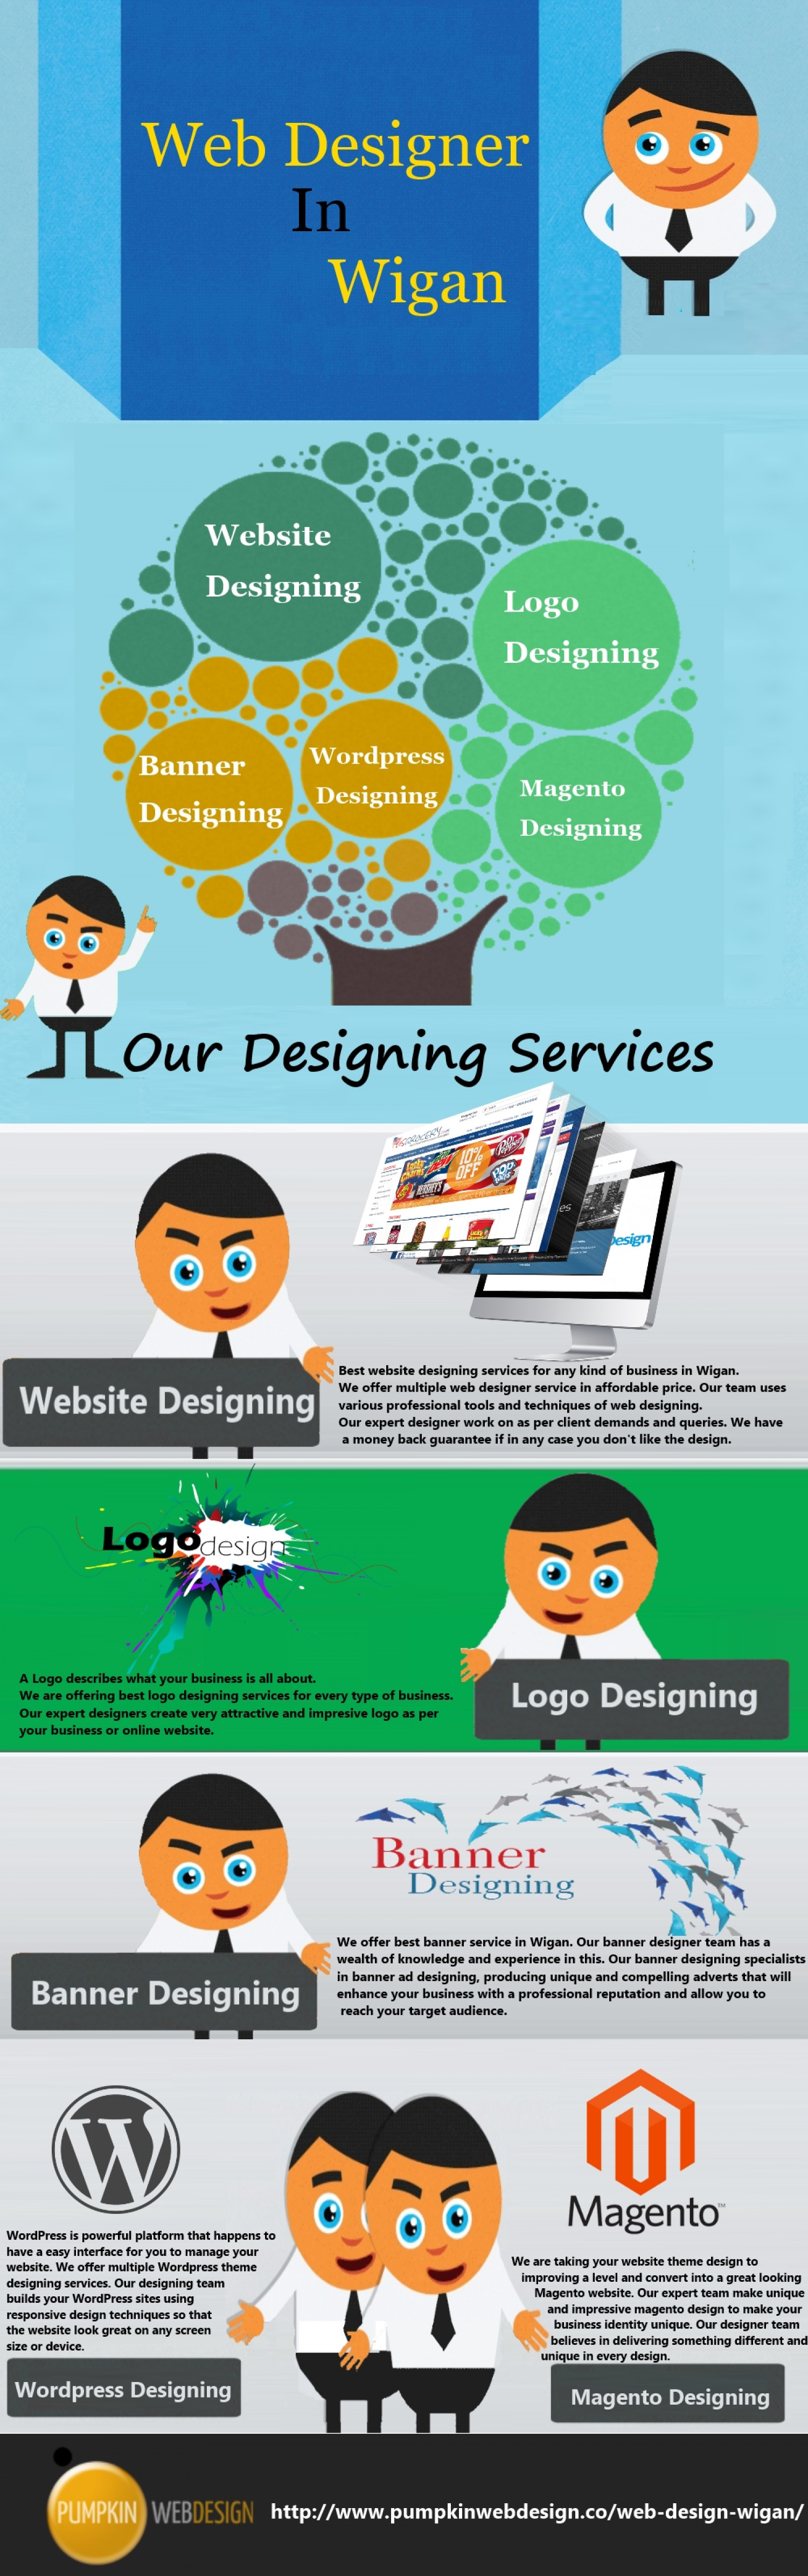 Website Designer In Wigan Infographic